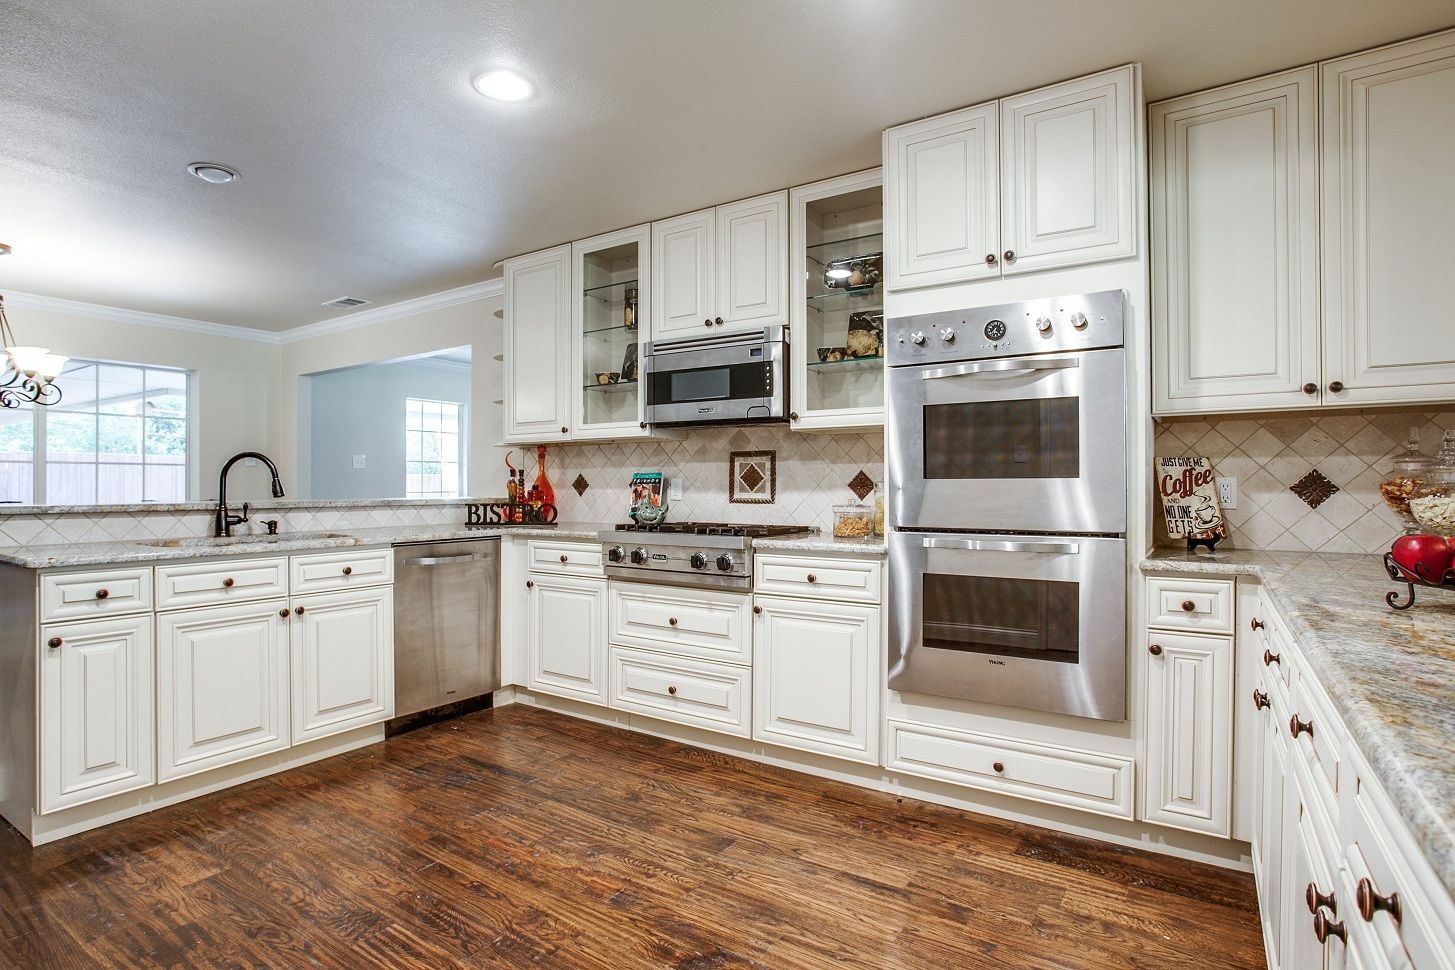 Off White Kitchen Cupboards Off White Kitchen Cabinets With White Appliances  Basement